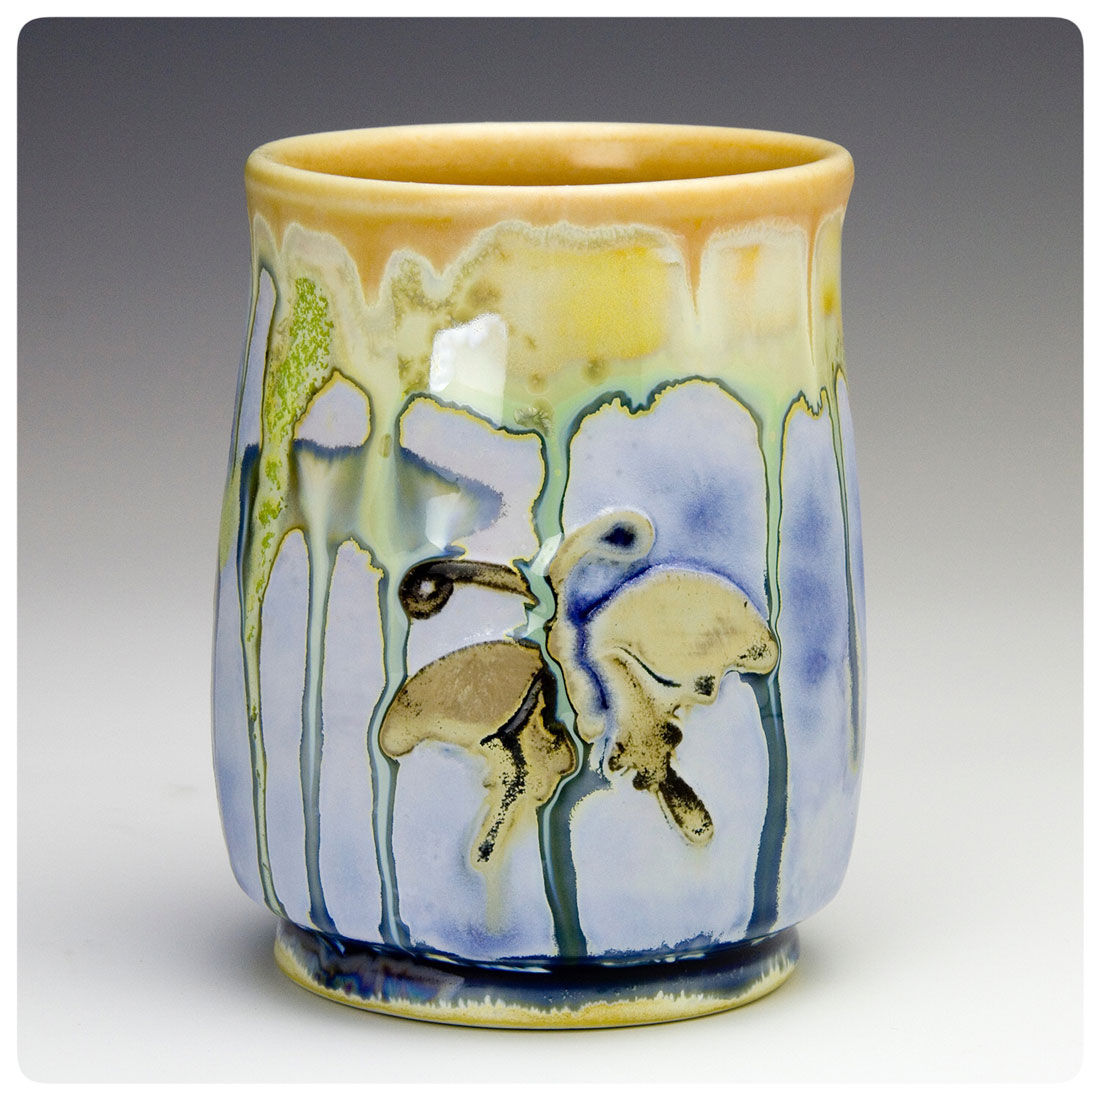 Crystalline Butterfly Cup made by Samantha Henneke, Bulldog Pottery, Seagrove, North Carolina